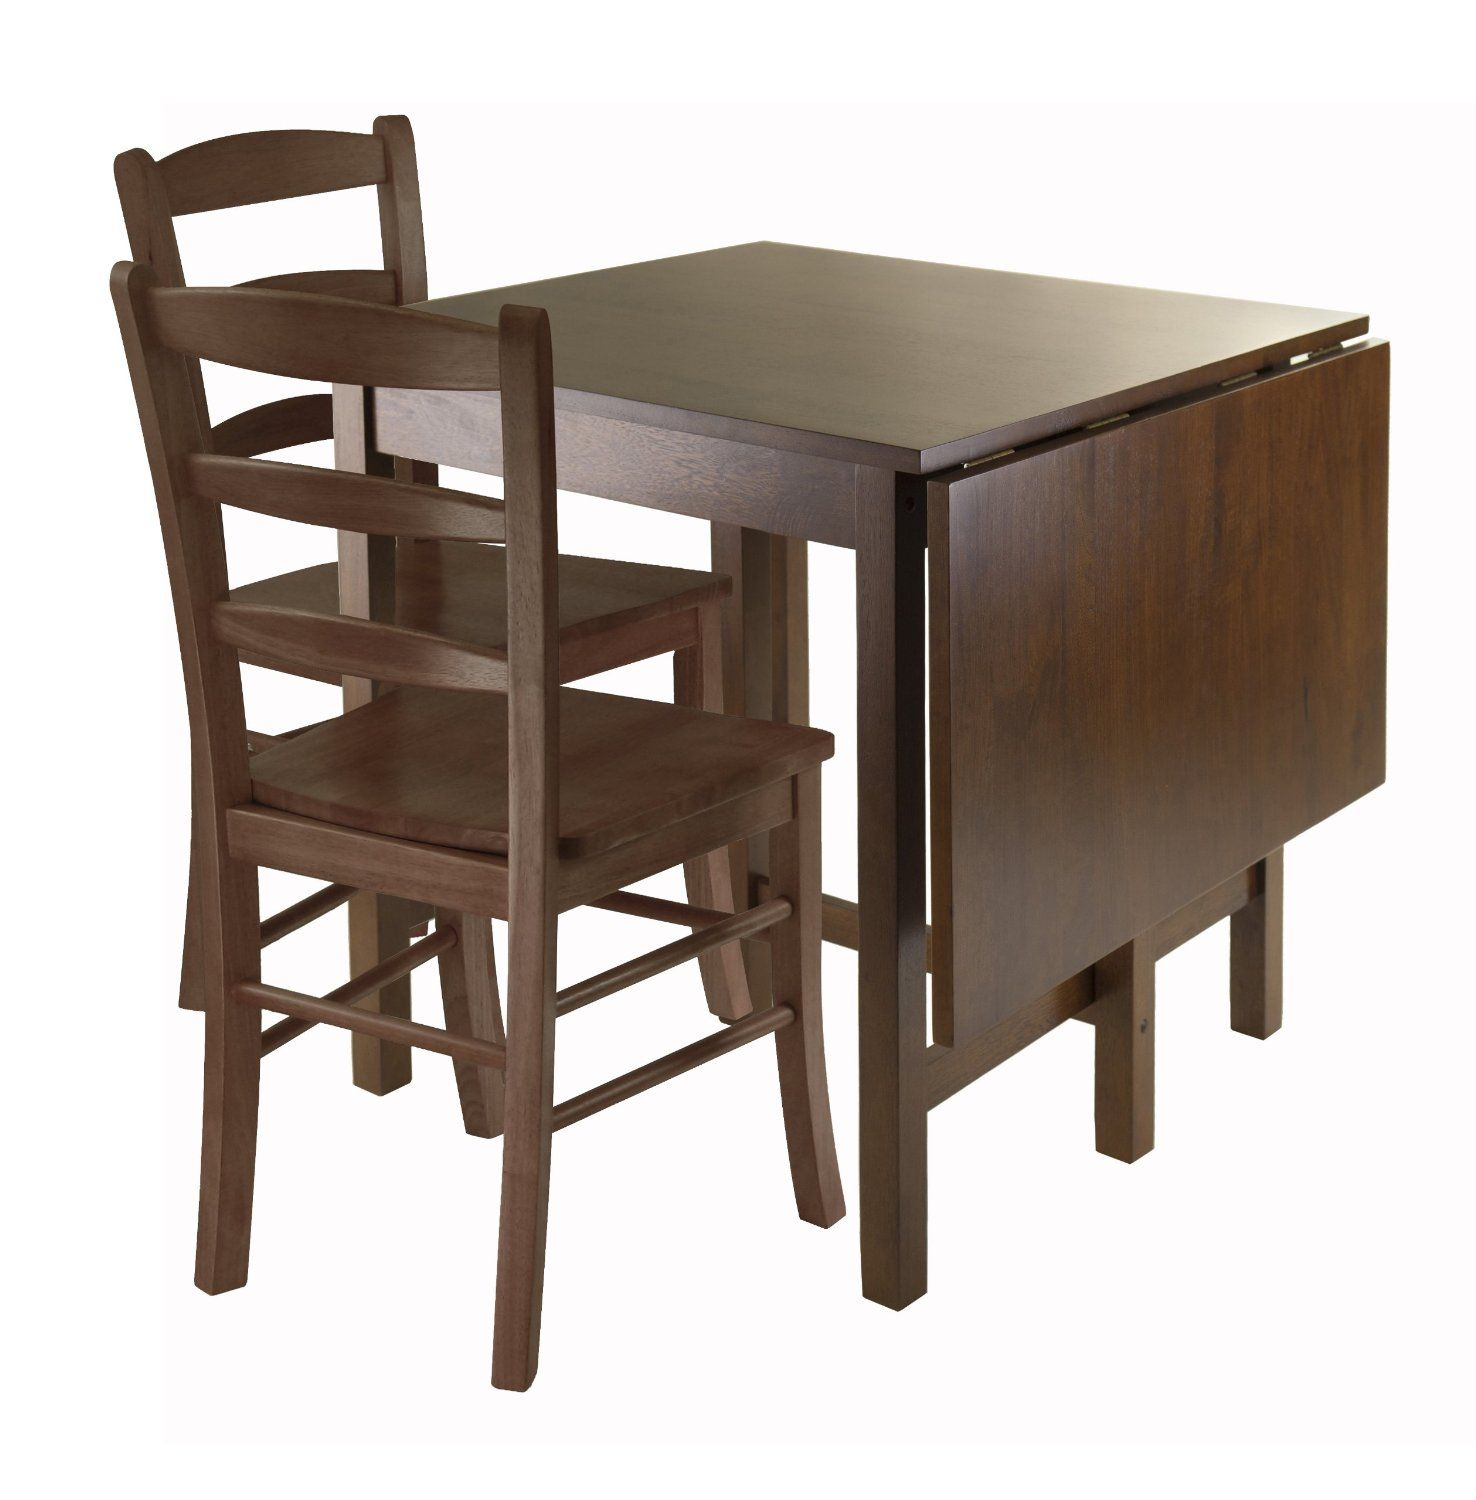 40+ Small drop leaf dining table for 2 Inspiration